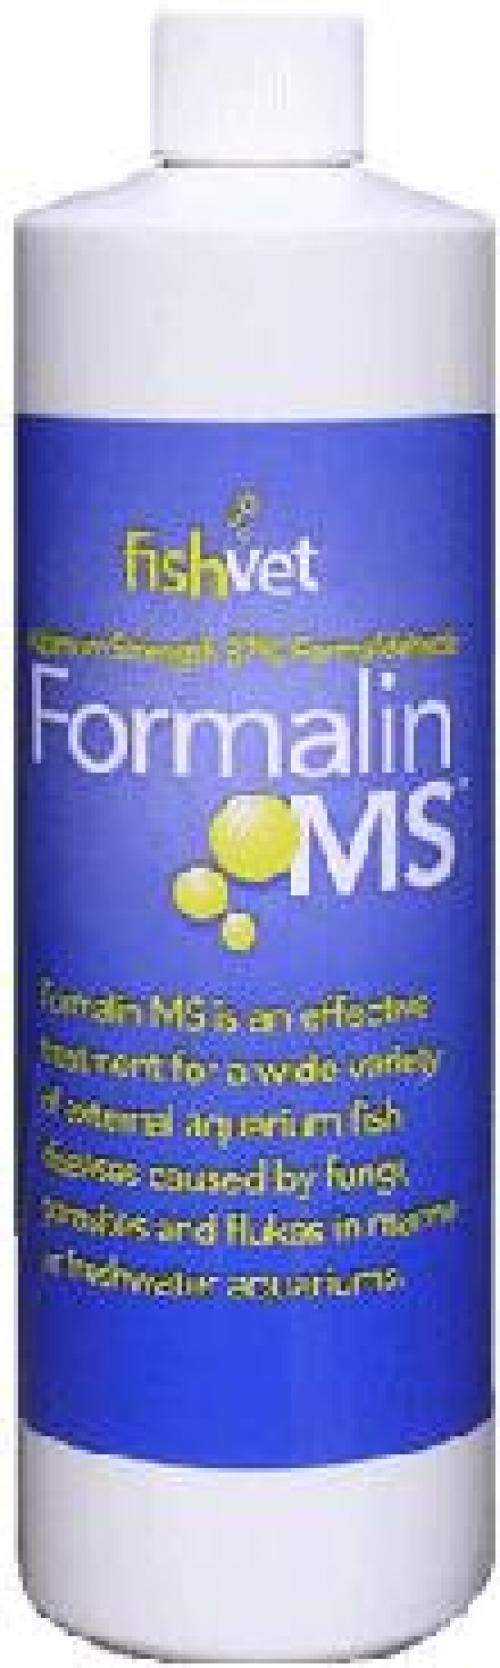 Freshwater aquarium fish diseases and treatments - Formalin Ms Is An Effective Treatment For A Wide Variety Of External Aquarium Fish Diseases Caused By Fungi Parasites And Flukes In Marine Or Freshwater